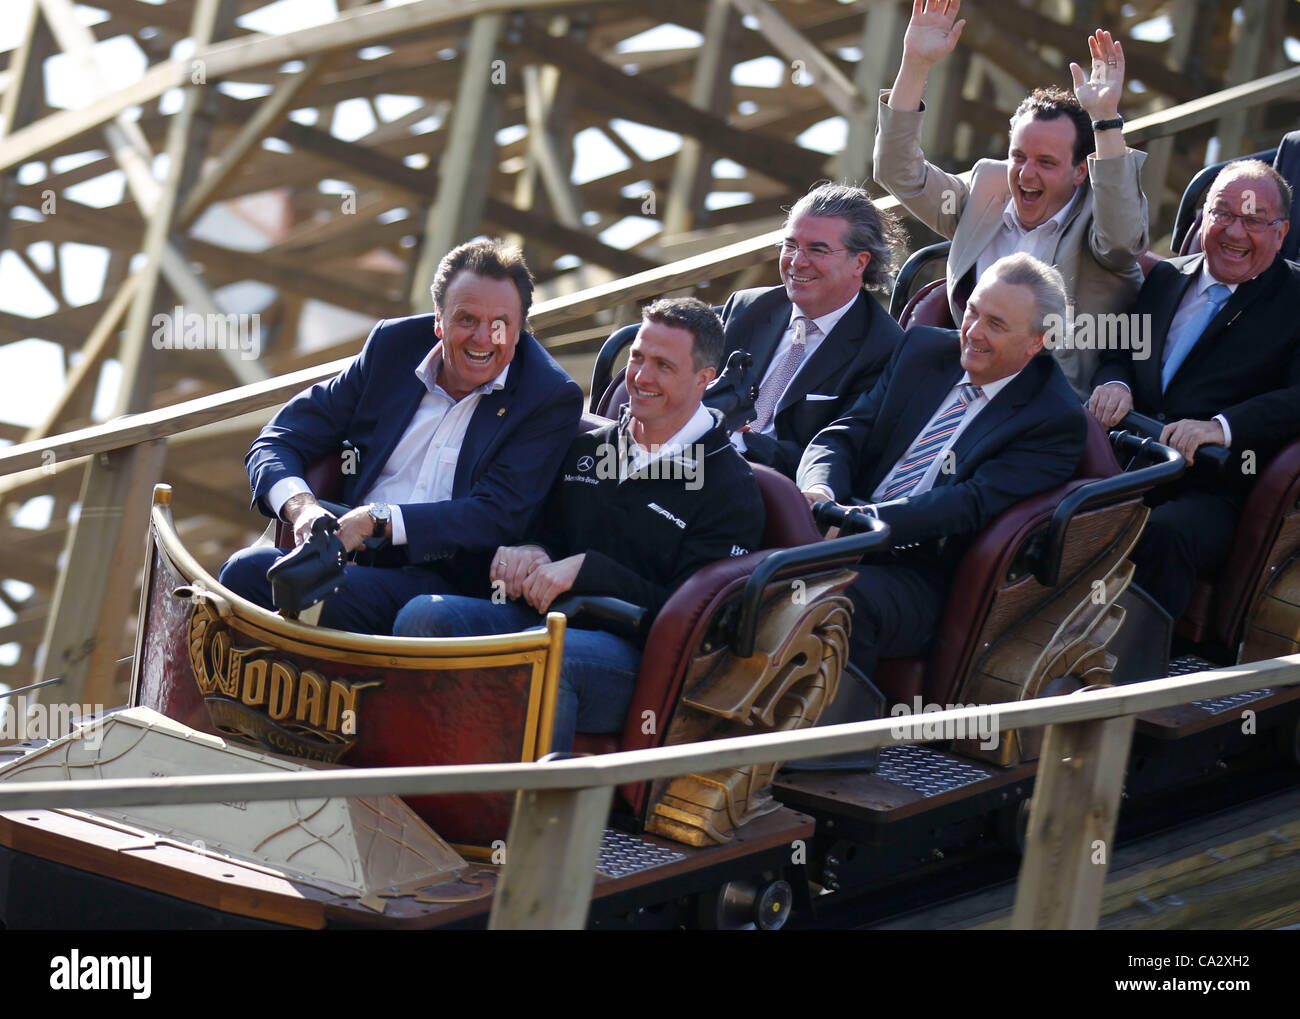 Europapark Spring Opening and Press Conference in Rust, Germany on Wednesday, 28.03.2012 with Mercedes Race Driver - Stock Image